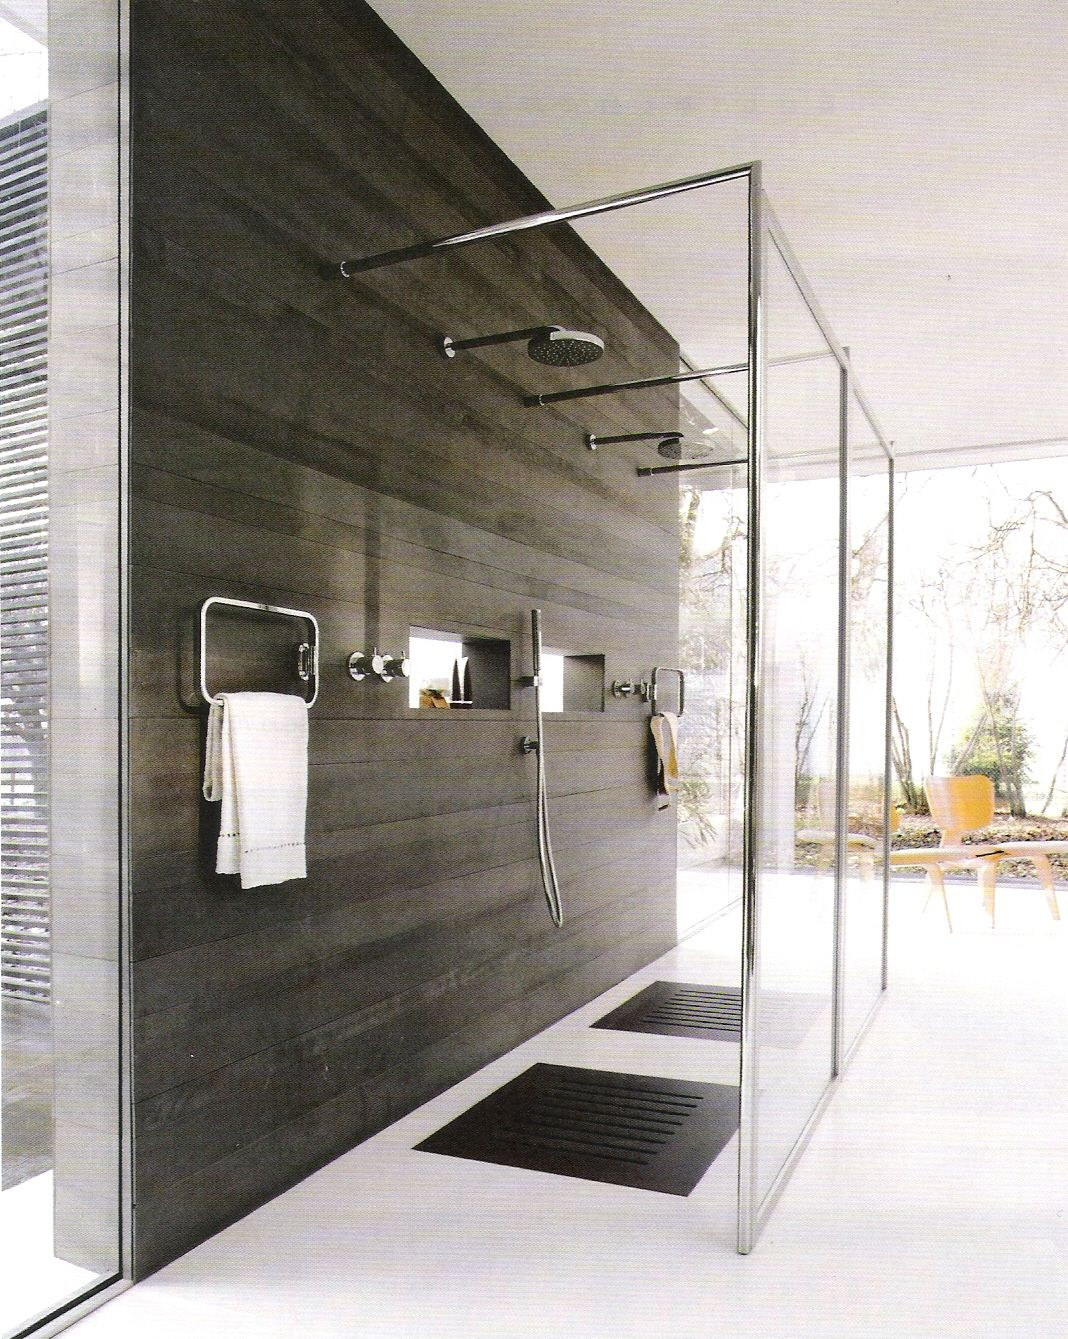 25 Incredible Open Shower Ideas Open Showers Showers And Bath